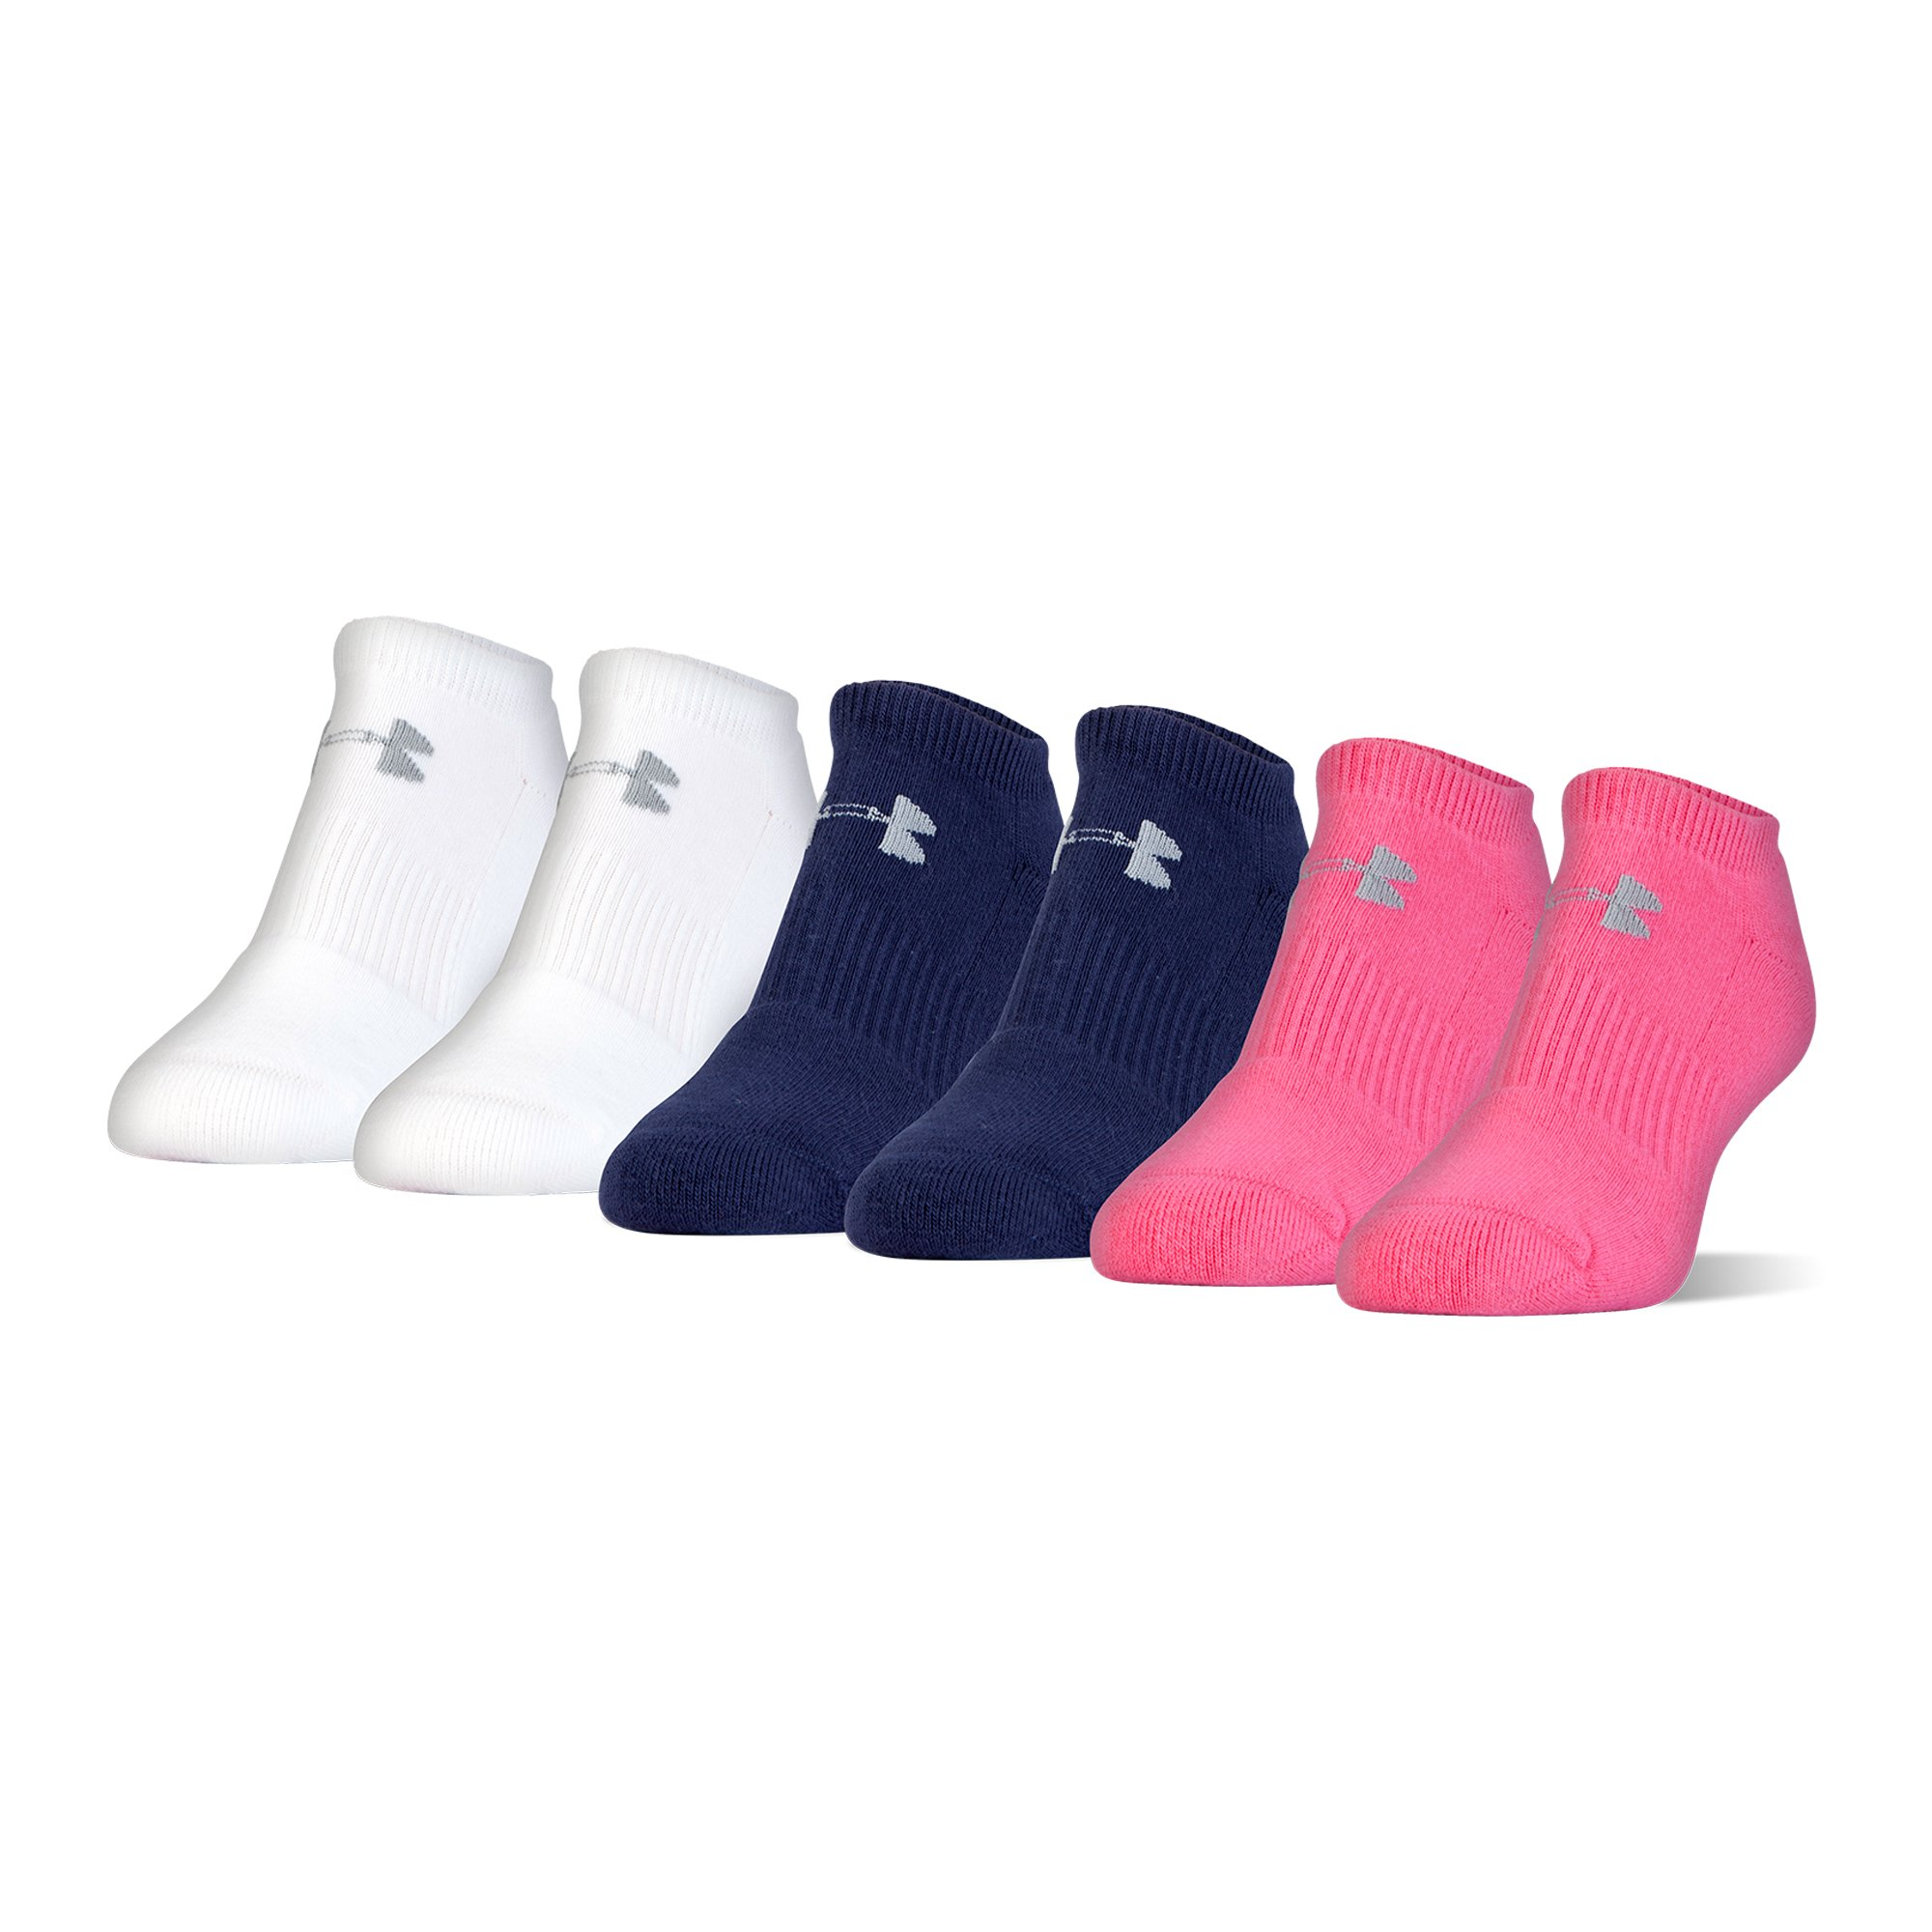 Under Armour Charged Cotton 2.0 No Show Socks, 6 Pairs, Pink Assorted, Medium